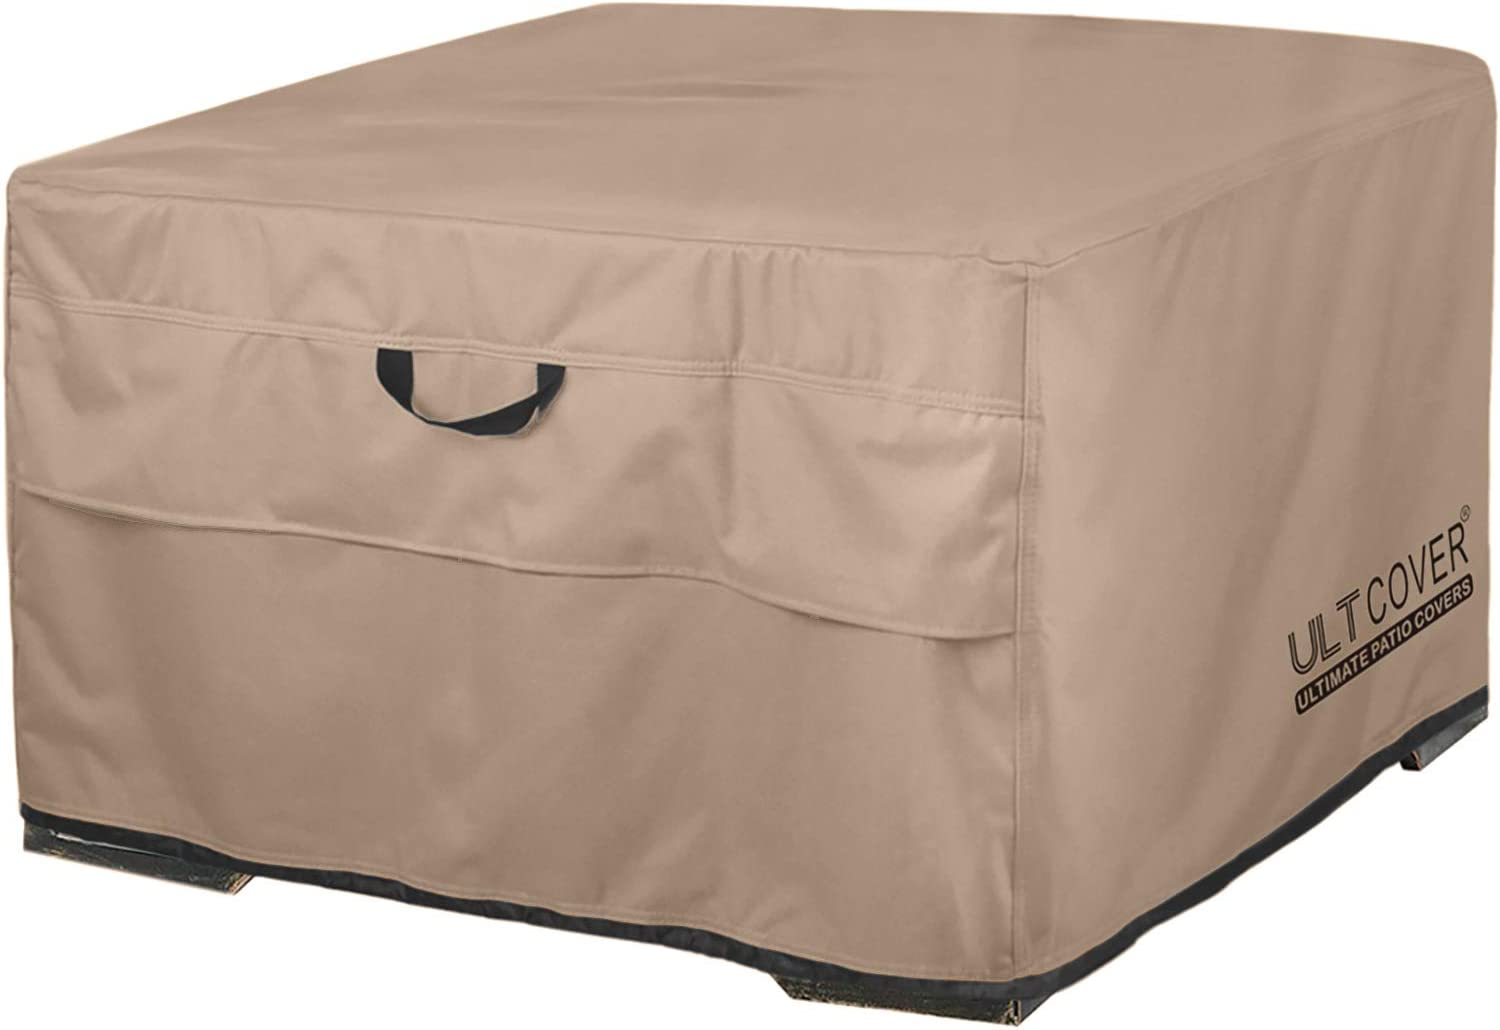 ULTCOVER Patio Fire Pit Table Cover Square 50 inch Outdoor Waterproof Fire Bowl Cover